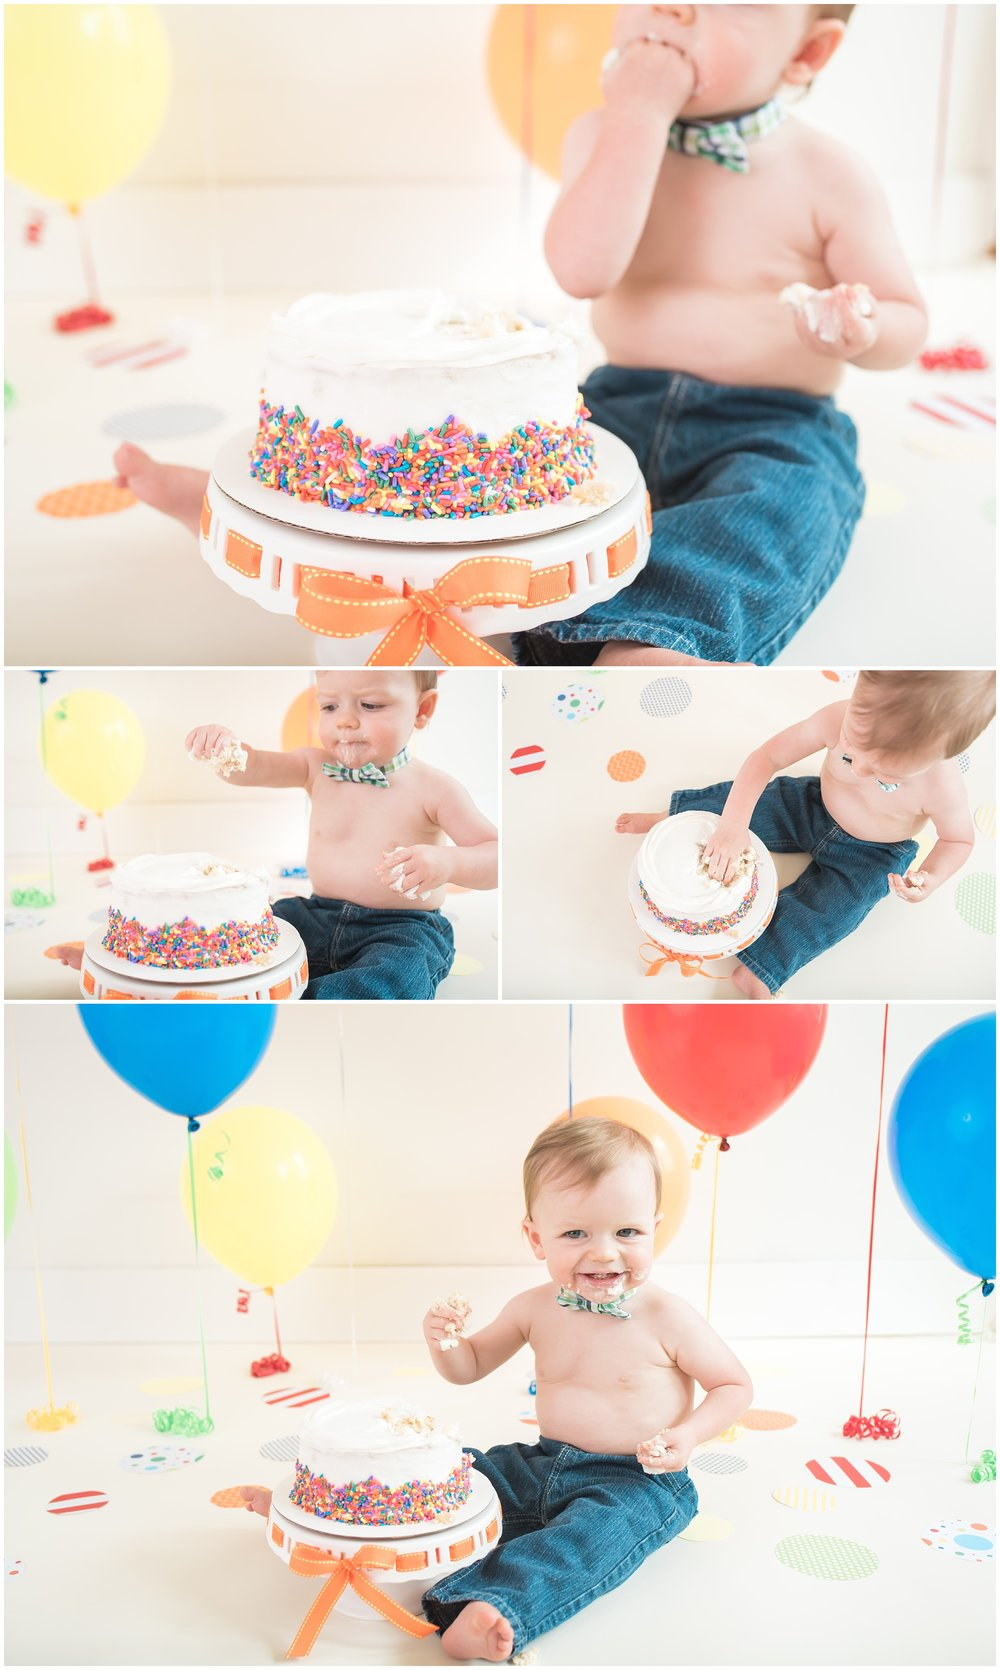 Greenville Cake Smash Photographer